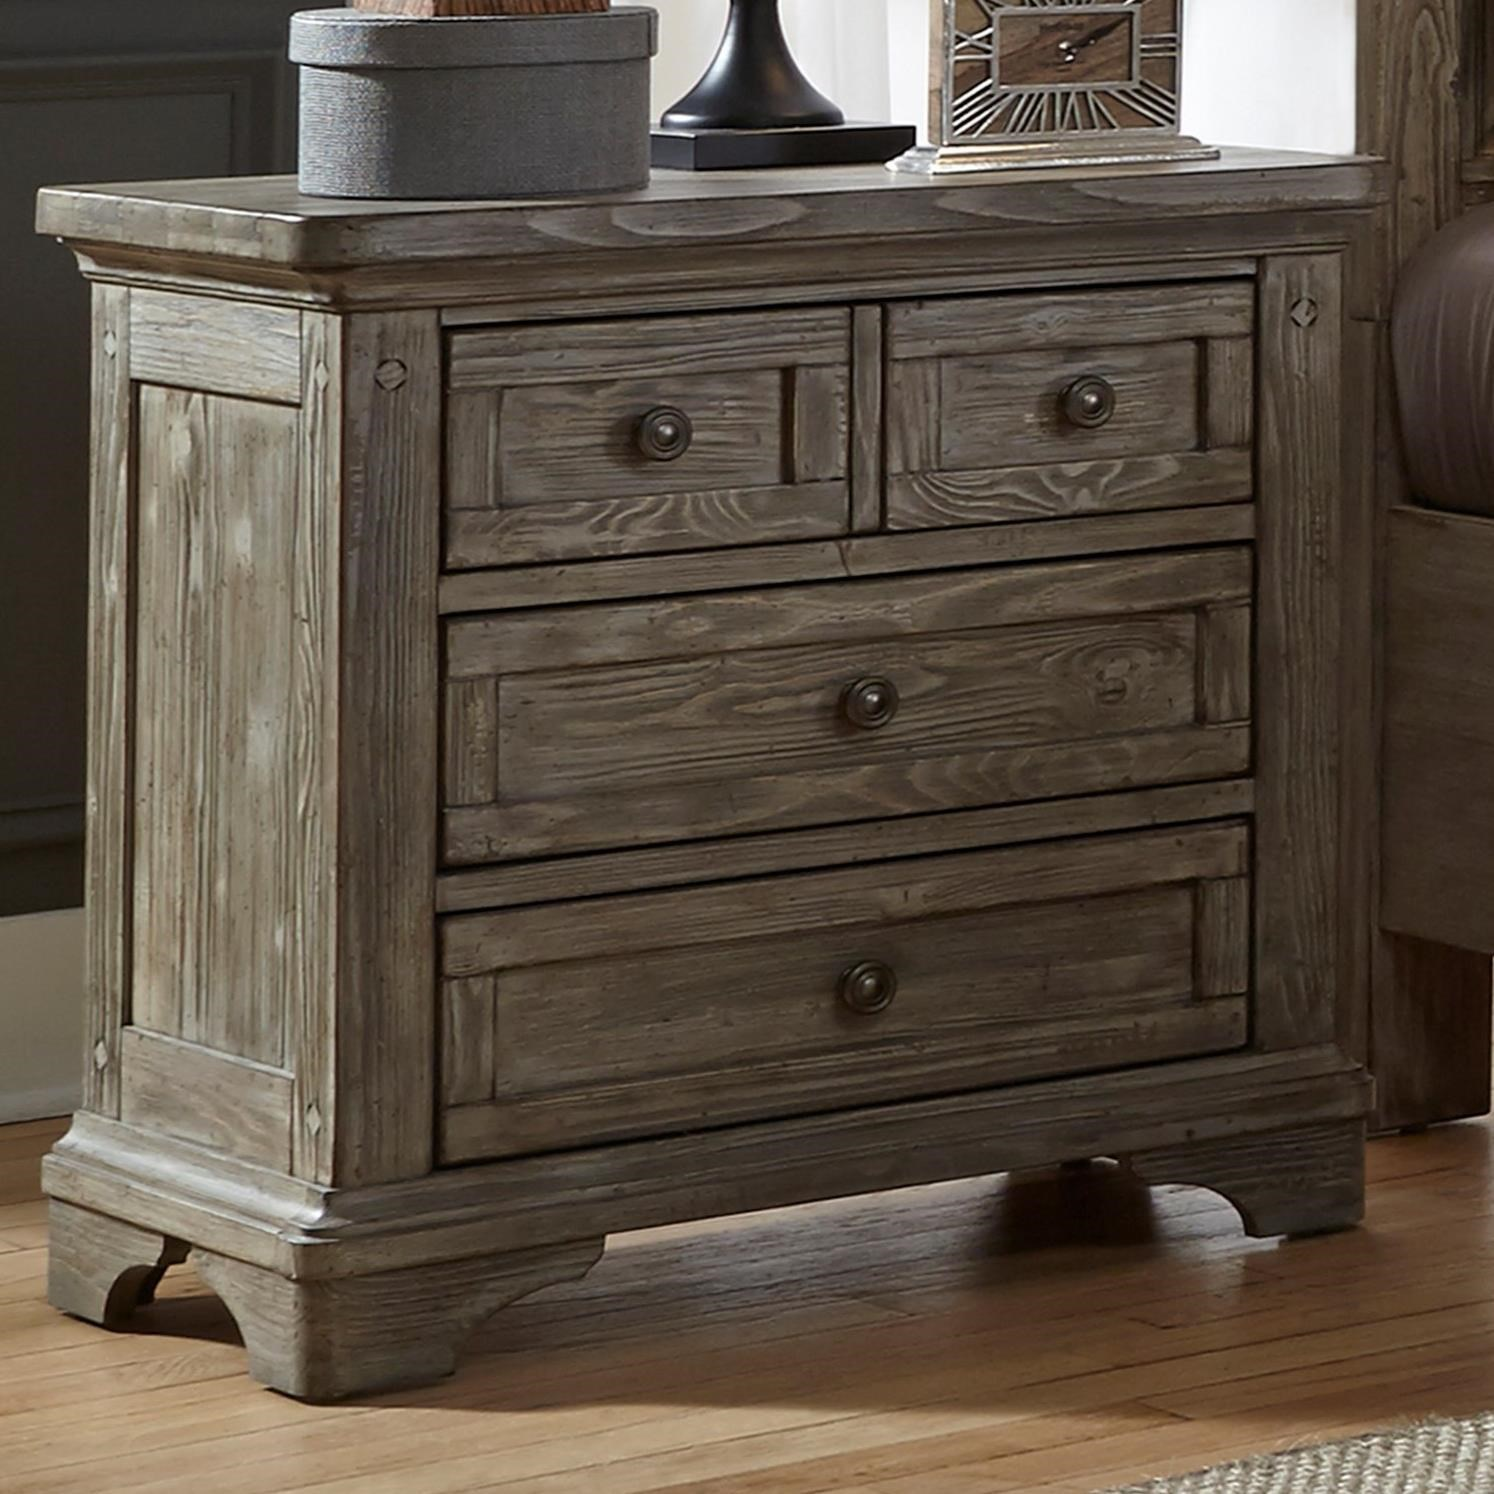 Merveilleux Liberty Furniture Highlands Night Stand With 3 Dovetail Drawers